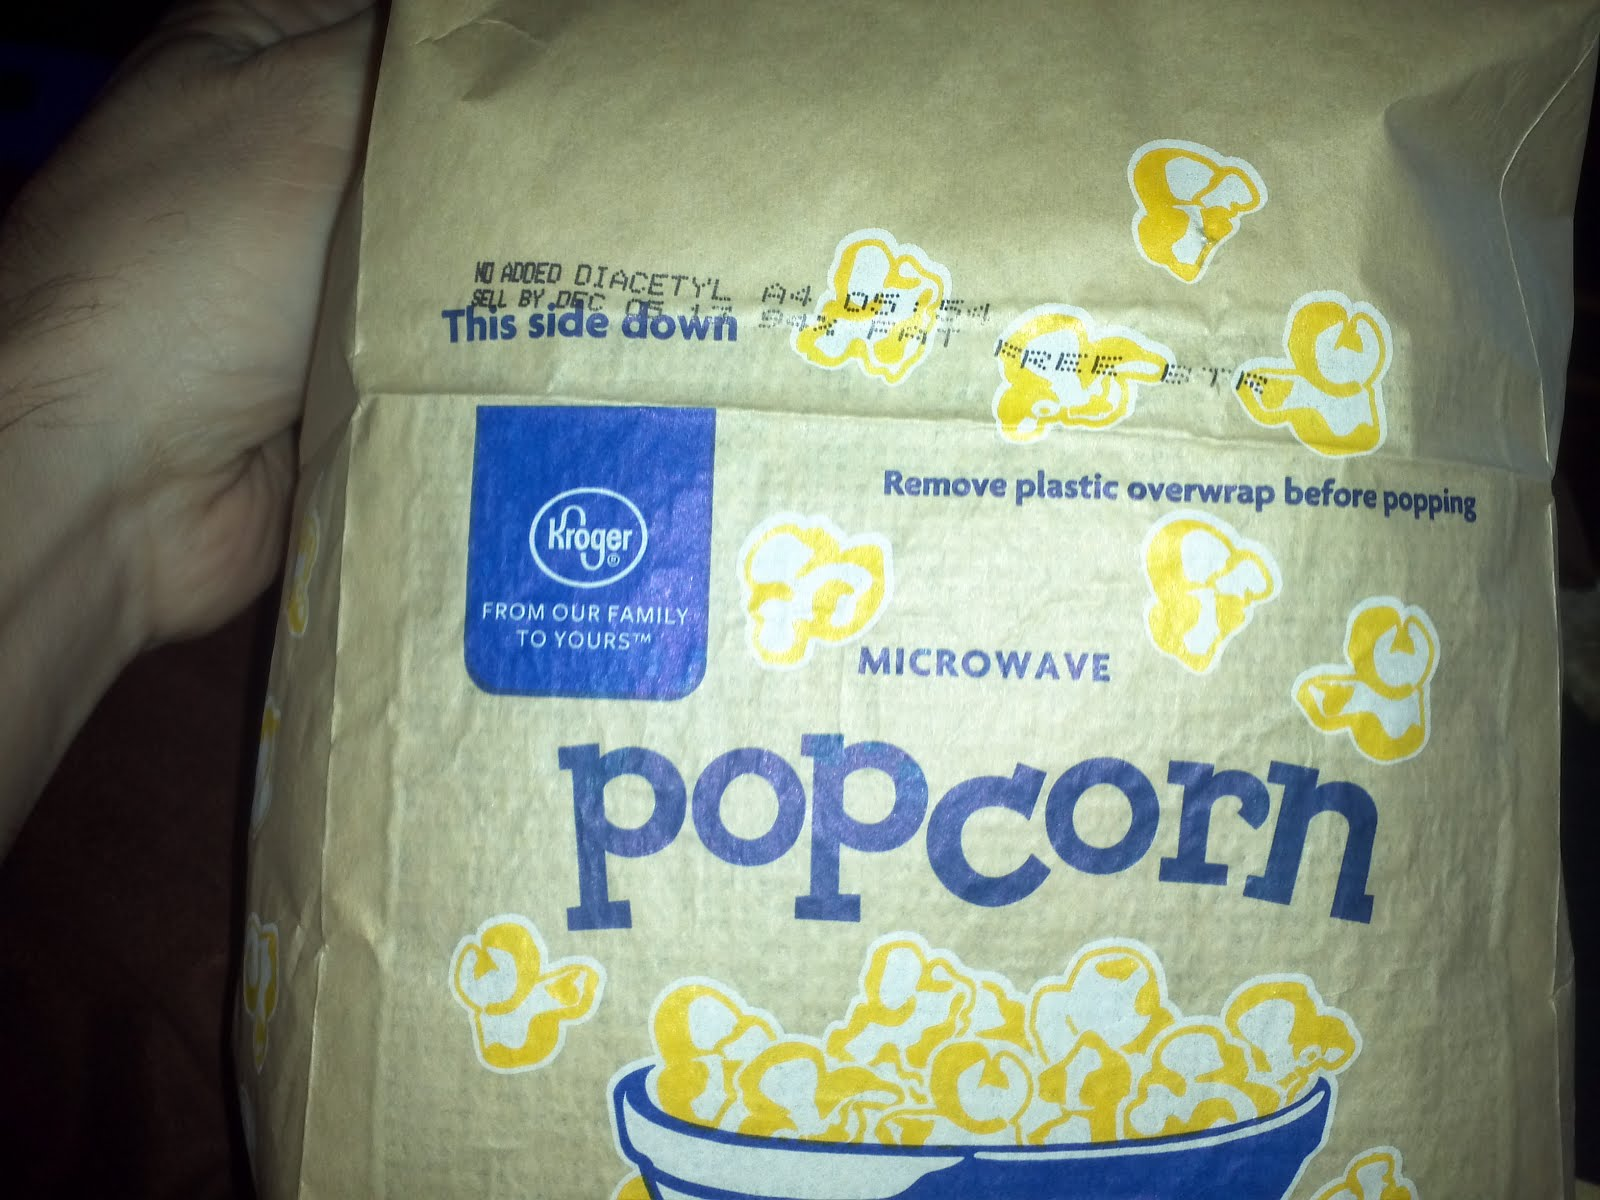 Chris Allen S Spectacularly Mediocre Blog Brand Microwave Popcorn